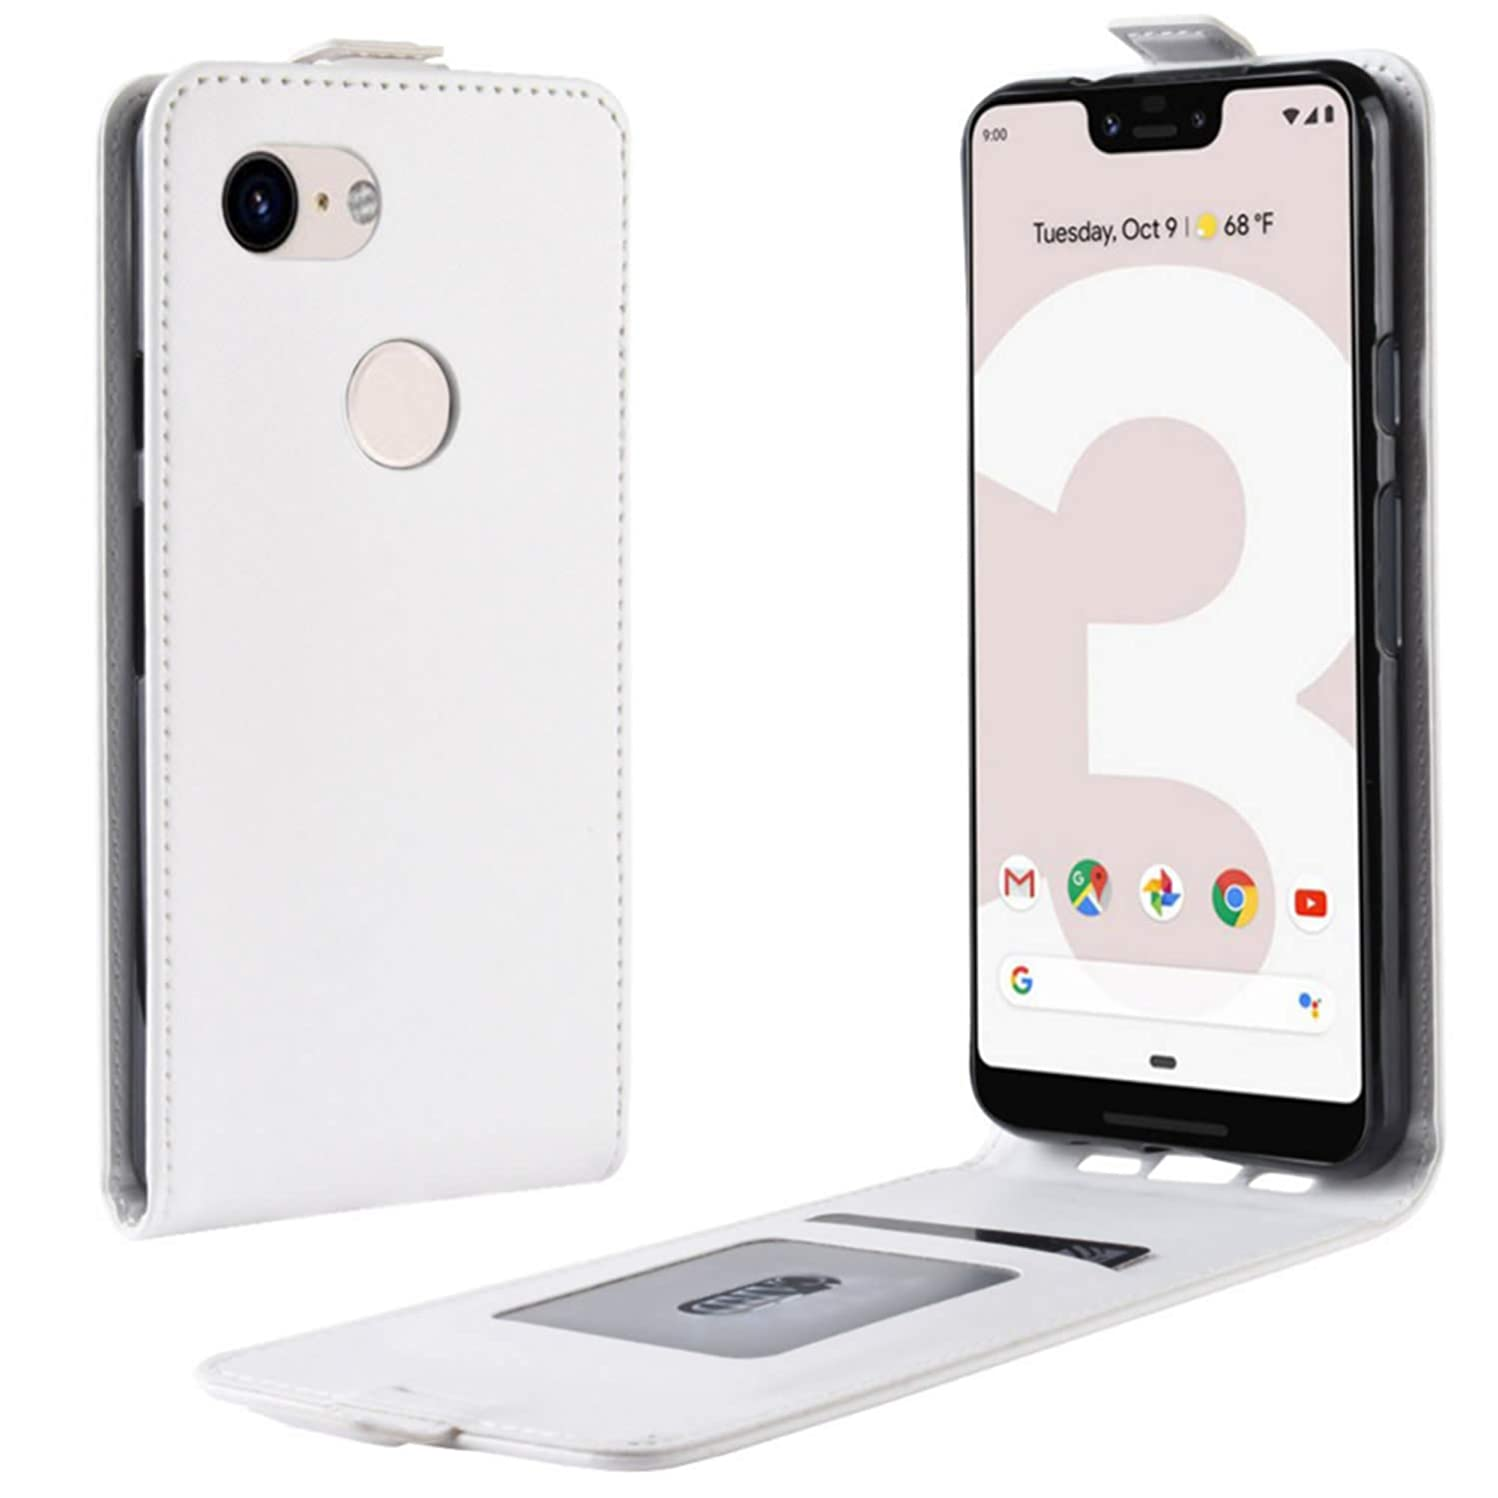 HualuBro Google Pixel 3a XL Case, Premium PU Leather Wallet Flip Folio Shockproof Phone Case Cover with [Card Slots] [Magnetic Closure] for Google Pixel 3a XL 2019 (White)